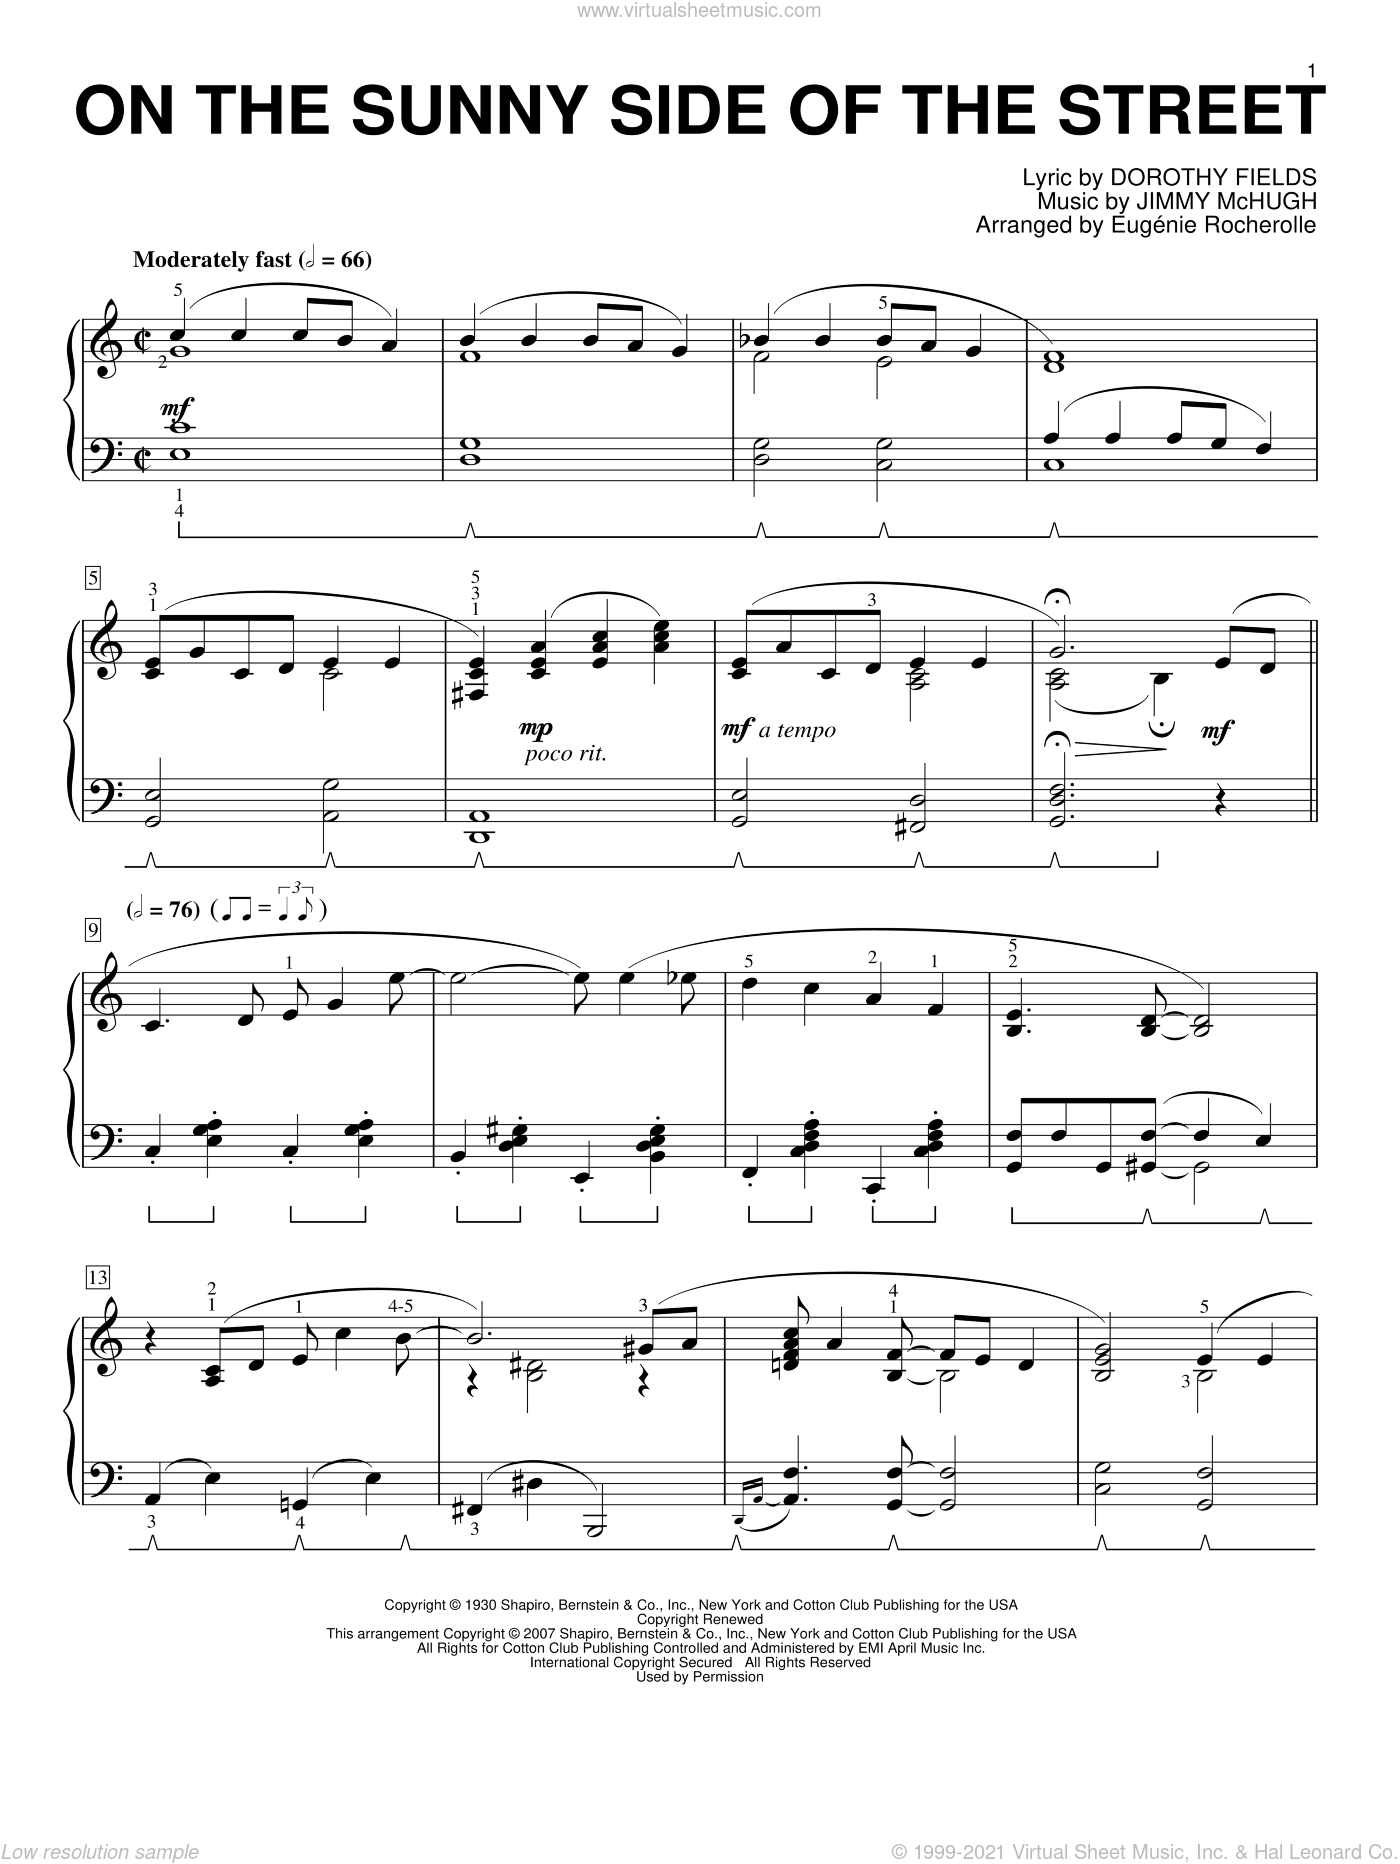 On The Sunny Side Of The Street sheet music for piano solo by Dorothy Fields, Eugenie Rocherolle and Jimmy McHugh, intermediate. Score Image Preview.